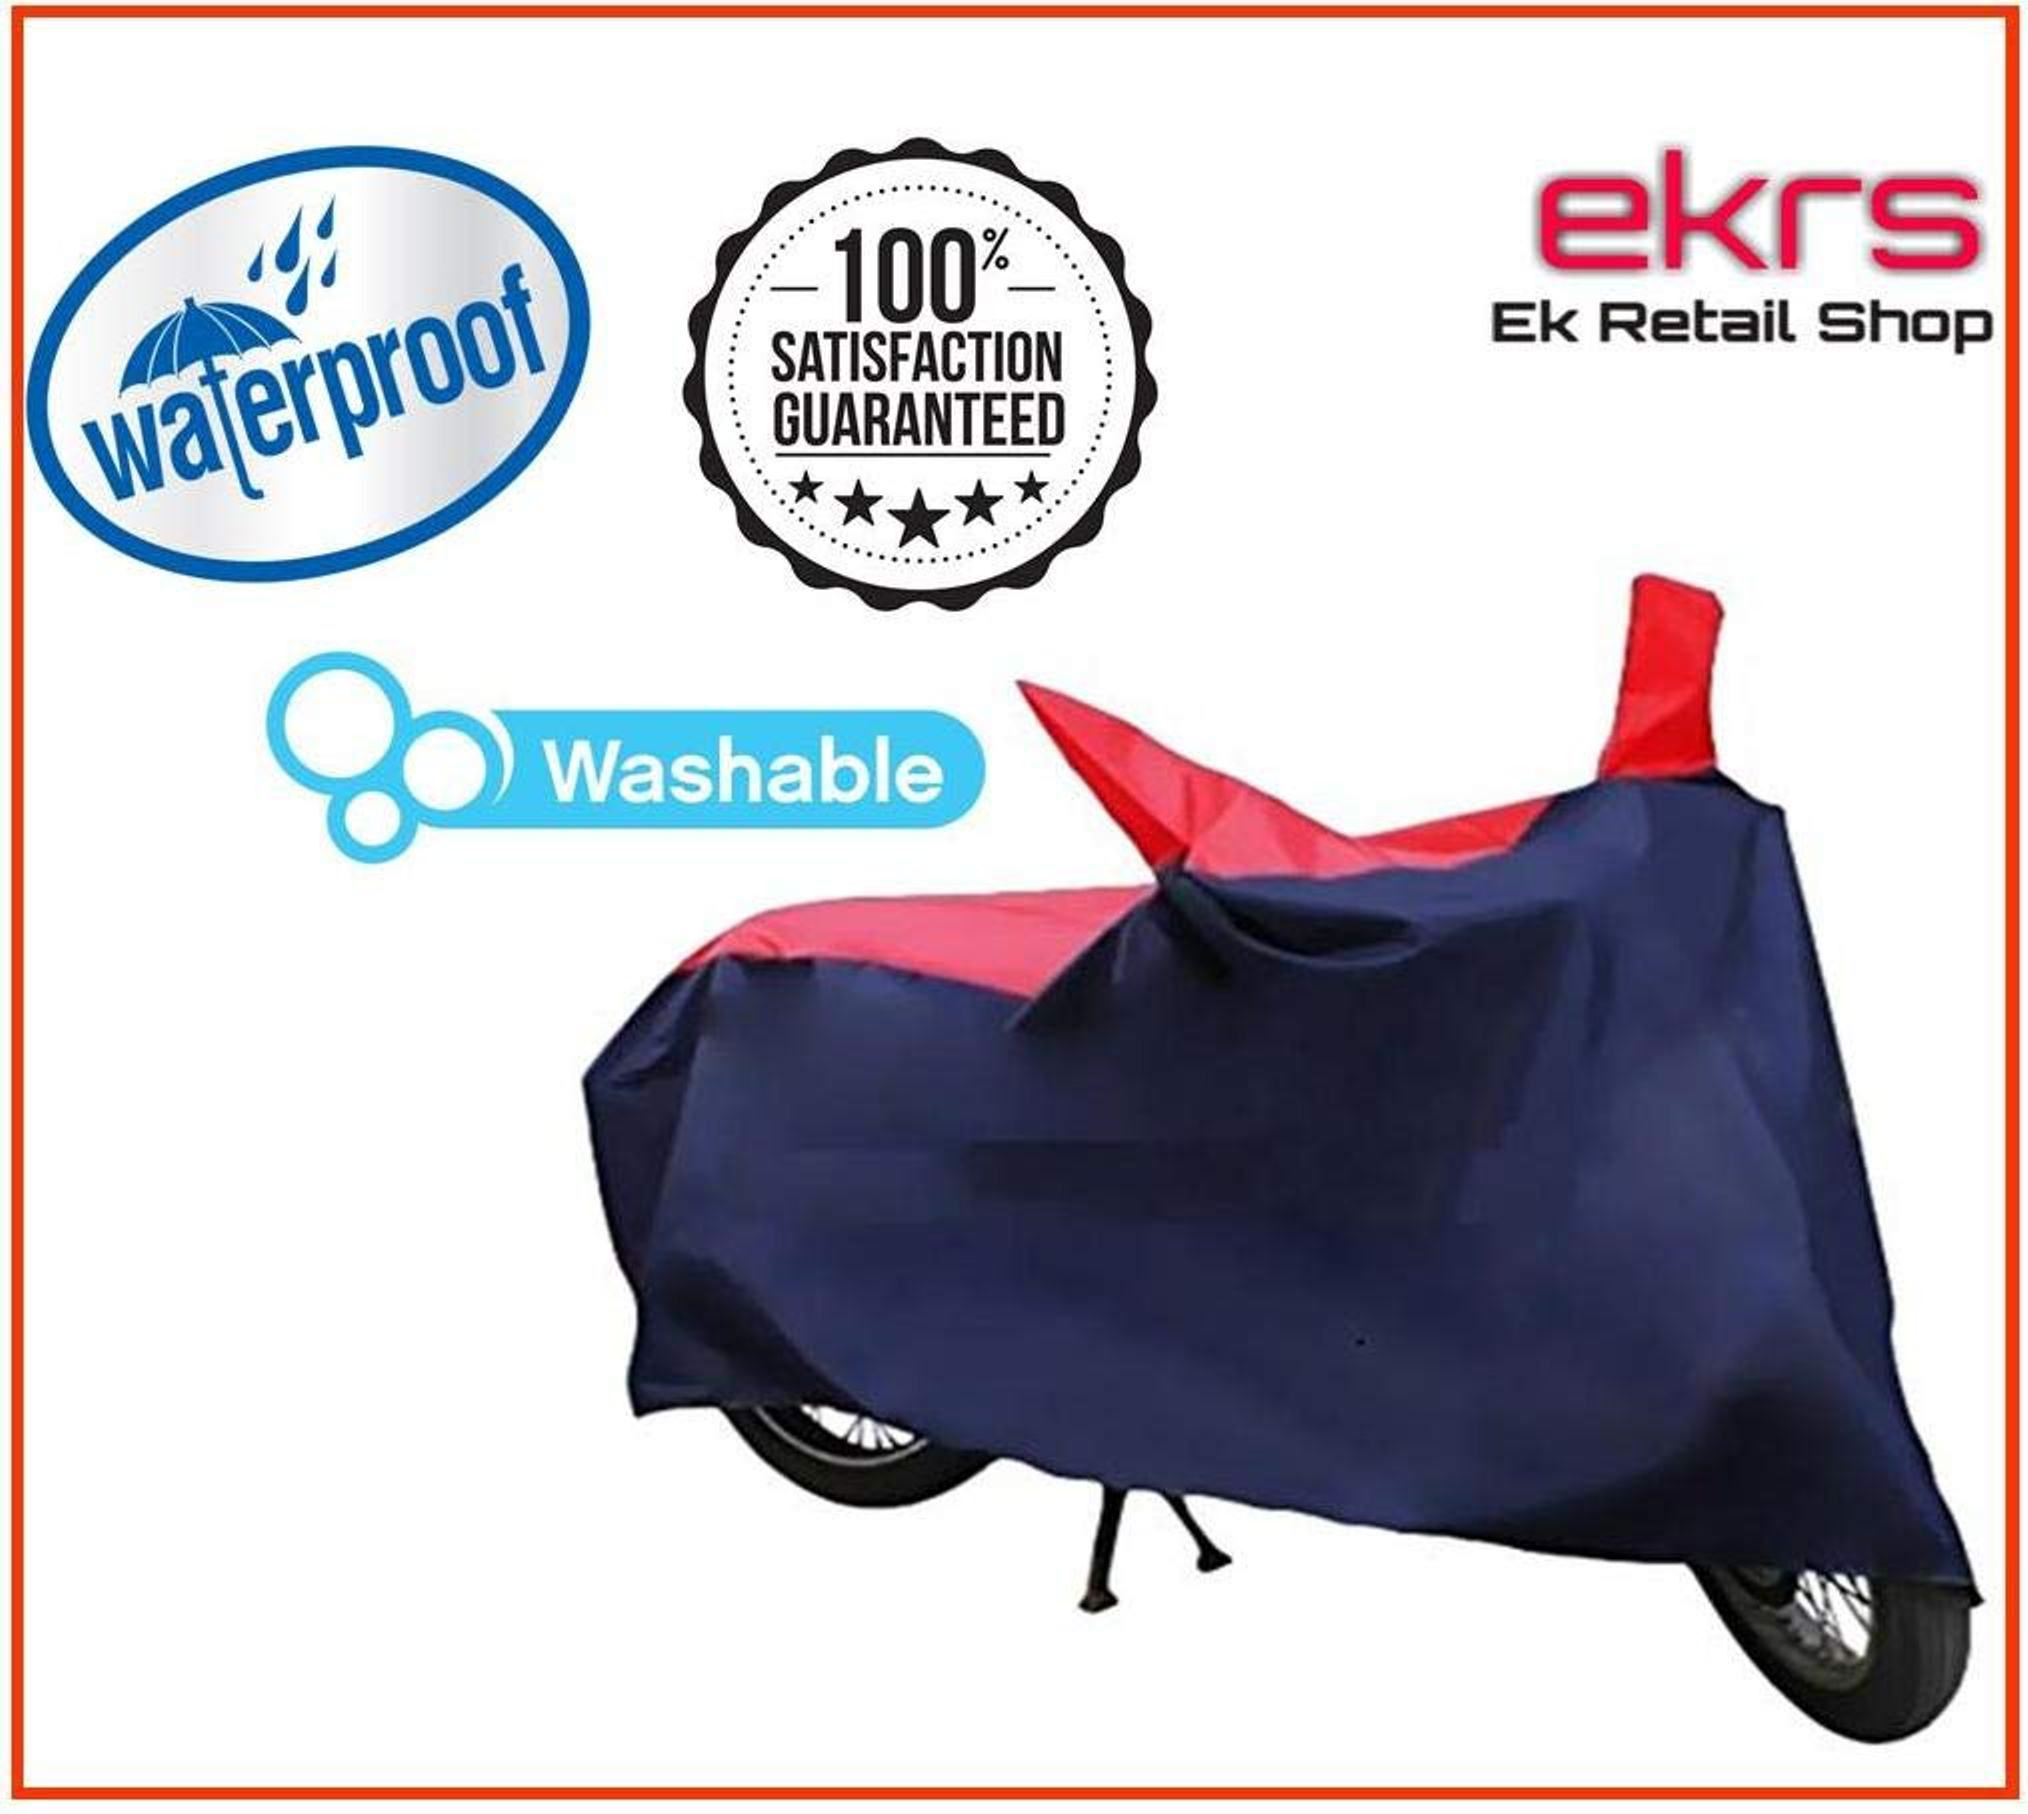 EKRS Nevy/Red Matty Waterproof Bike Body Cover for Triumph Thunderbird